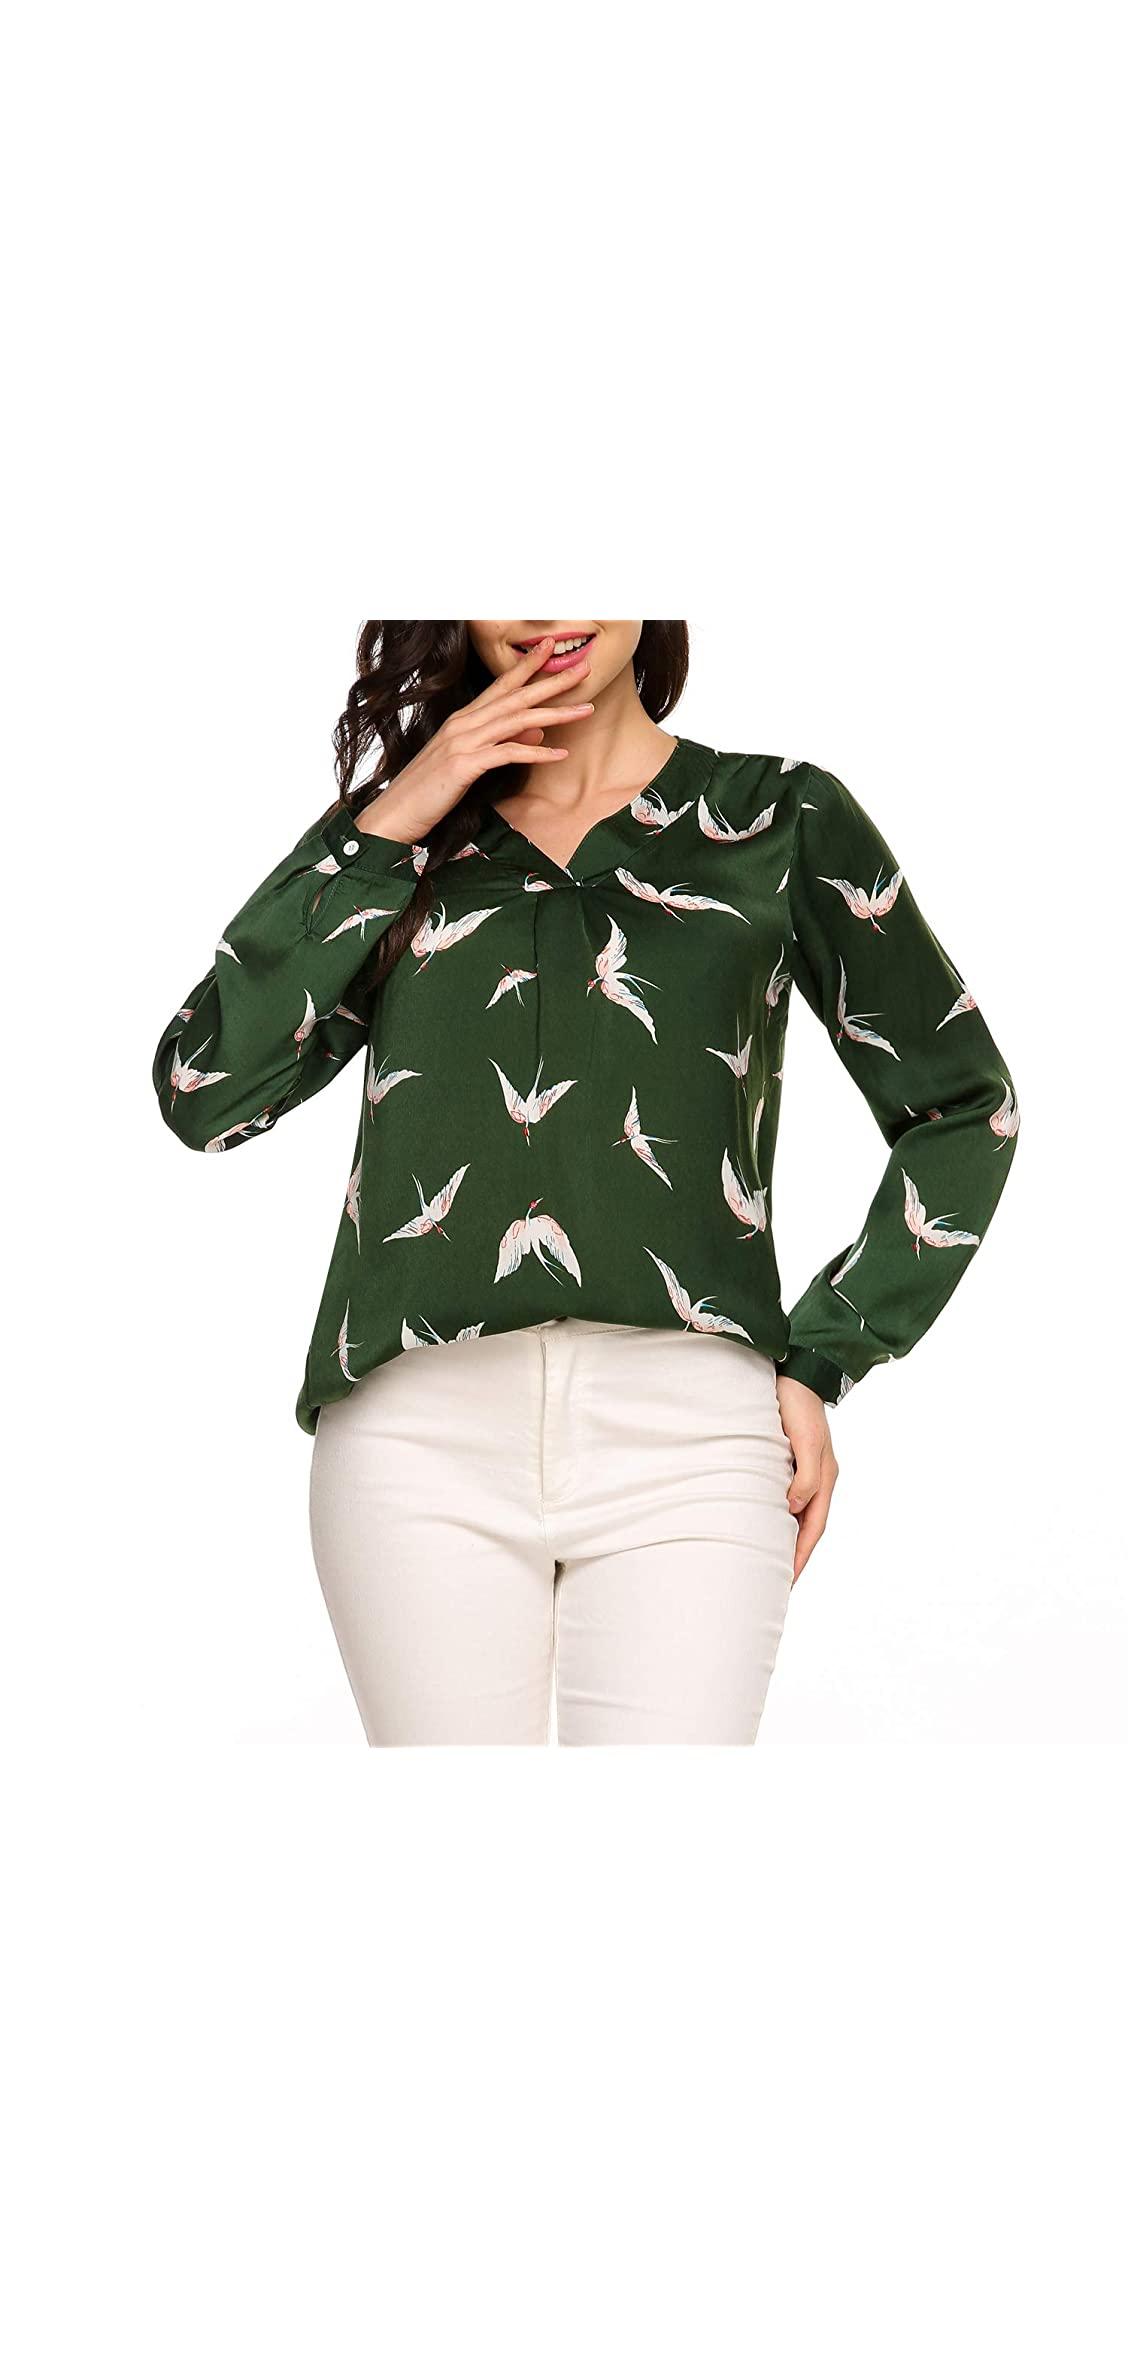 Women Chiffon Blouse V Neck Work Tops Casual Printed